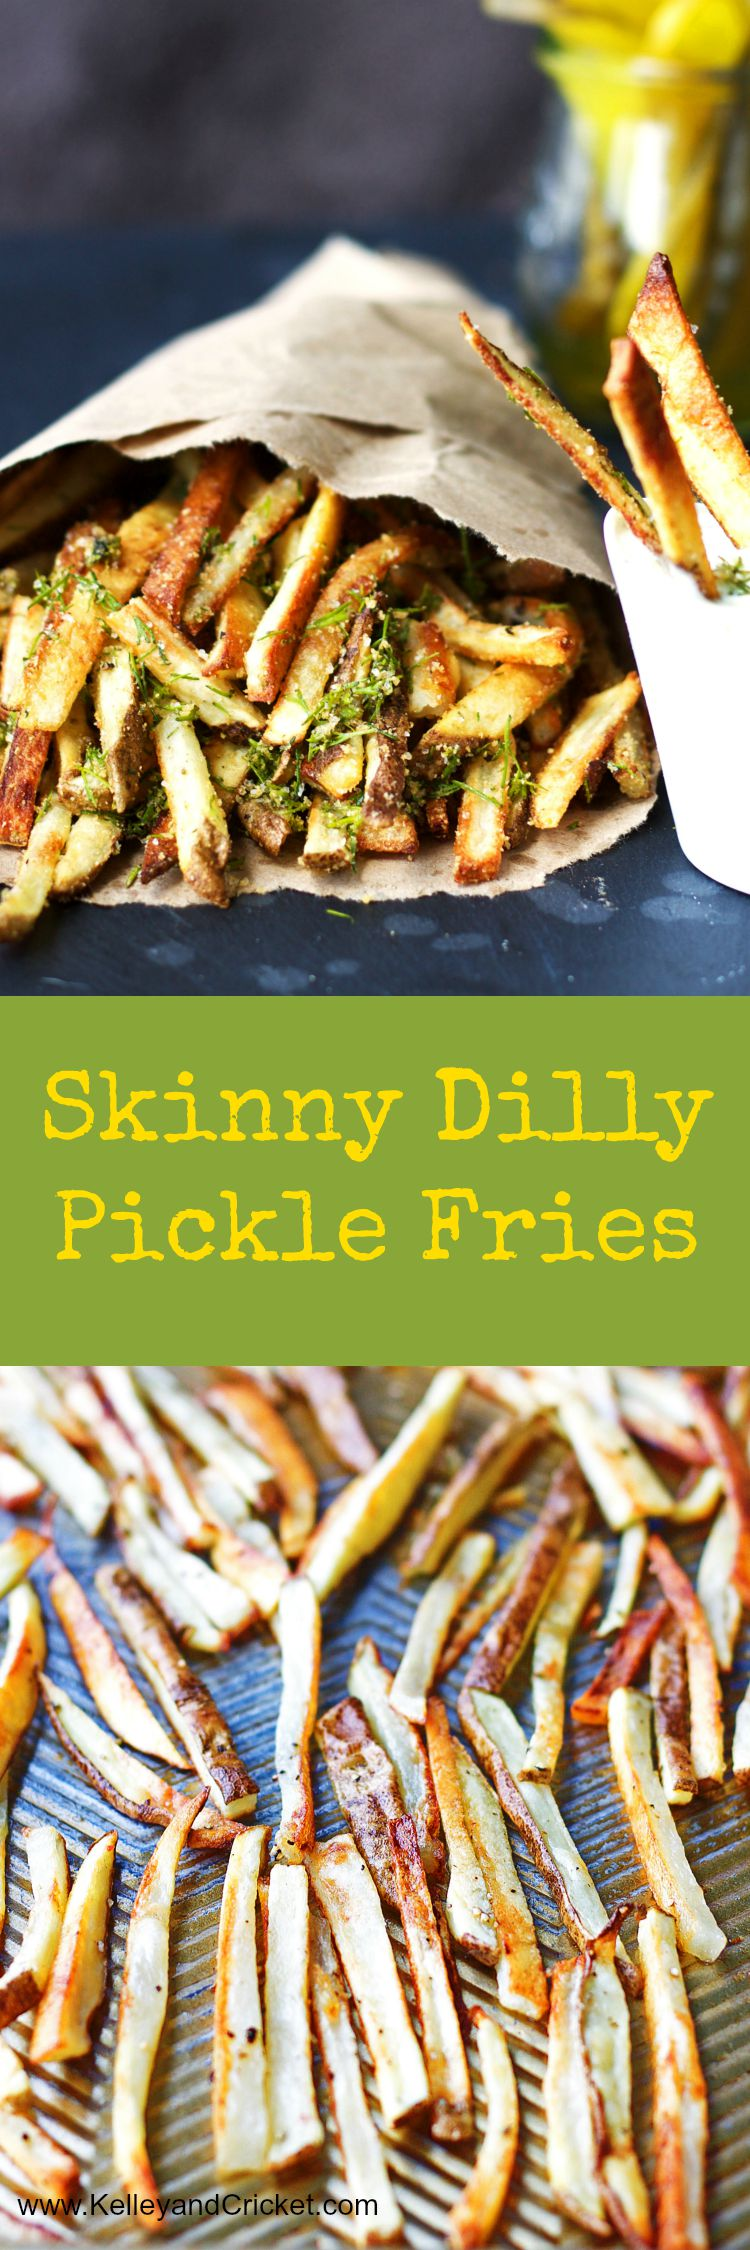 Skinny Dilly Pickle Fries - Kelley and Cricket